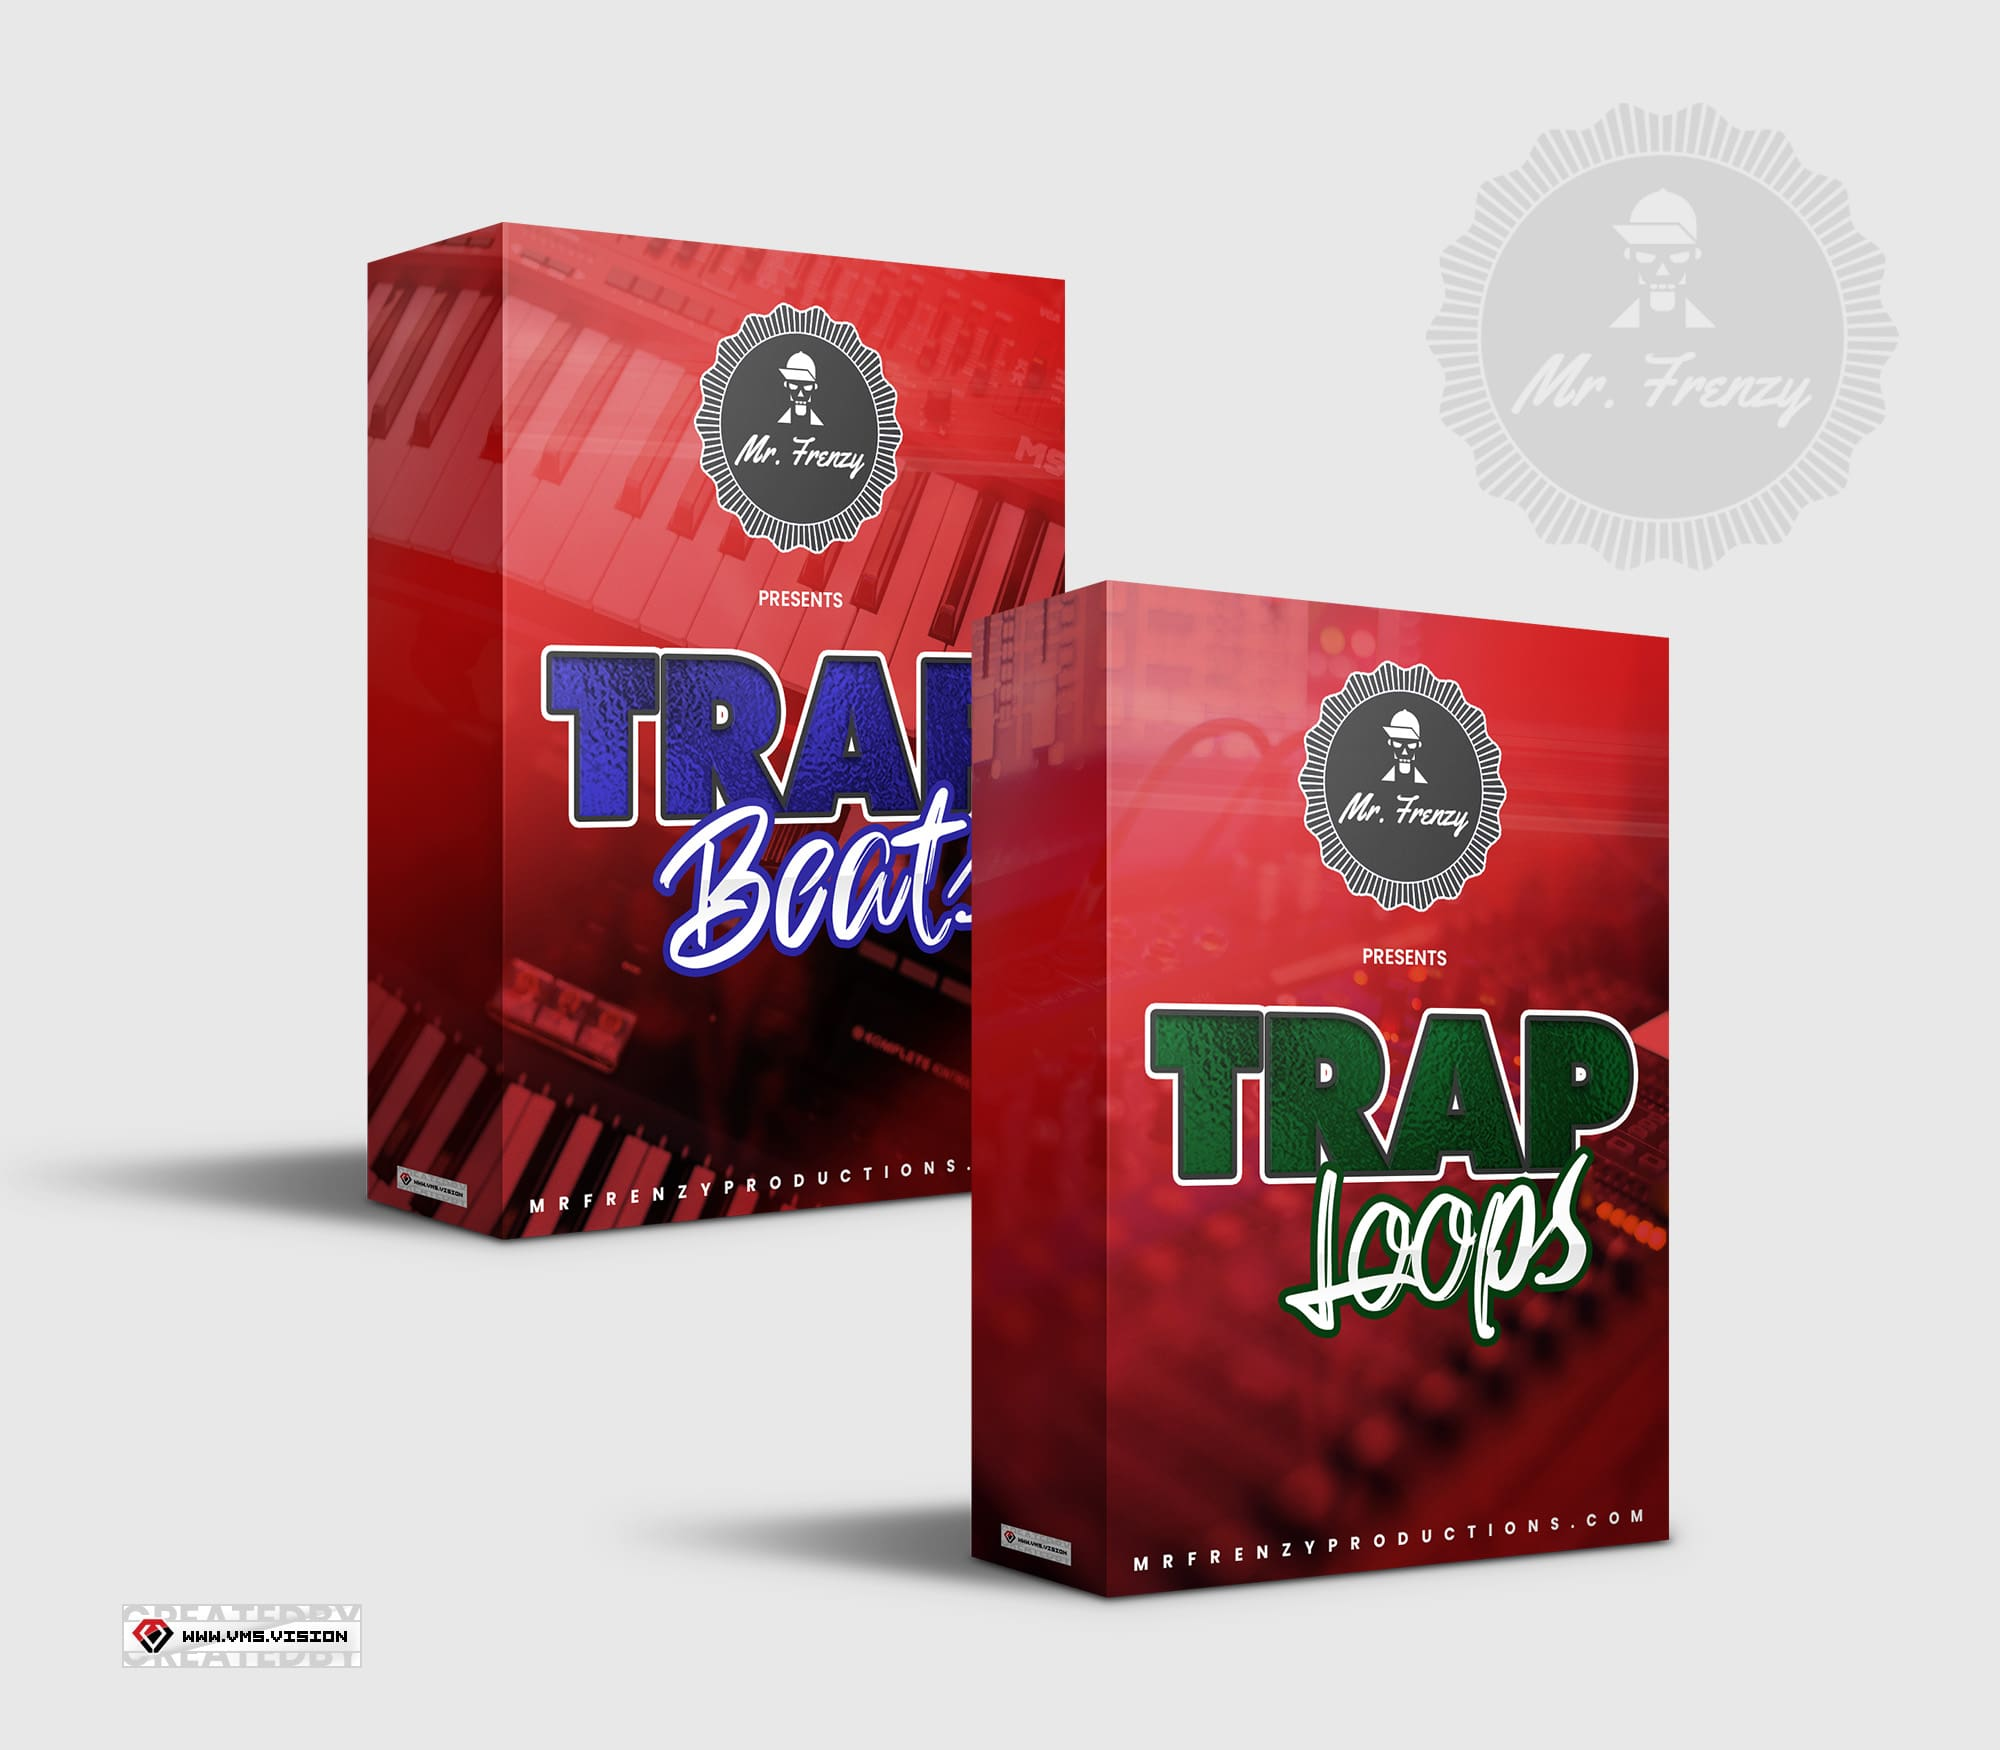 Mr Frenzy – Trap Beats & Trap Loops